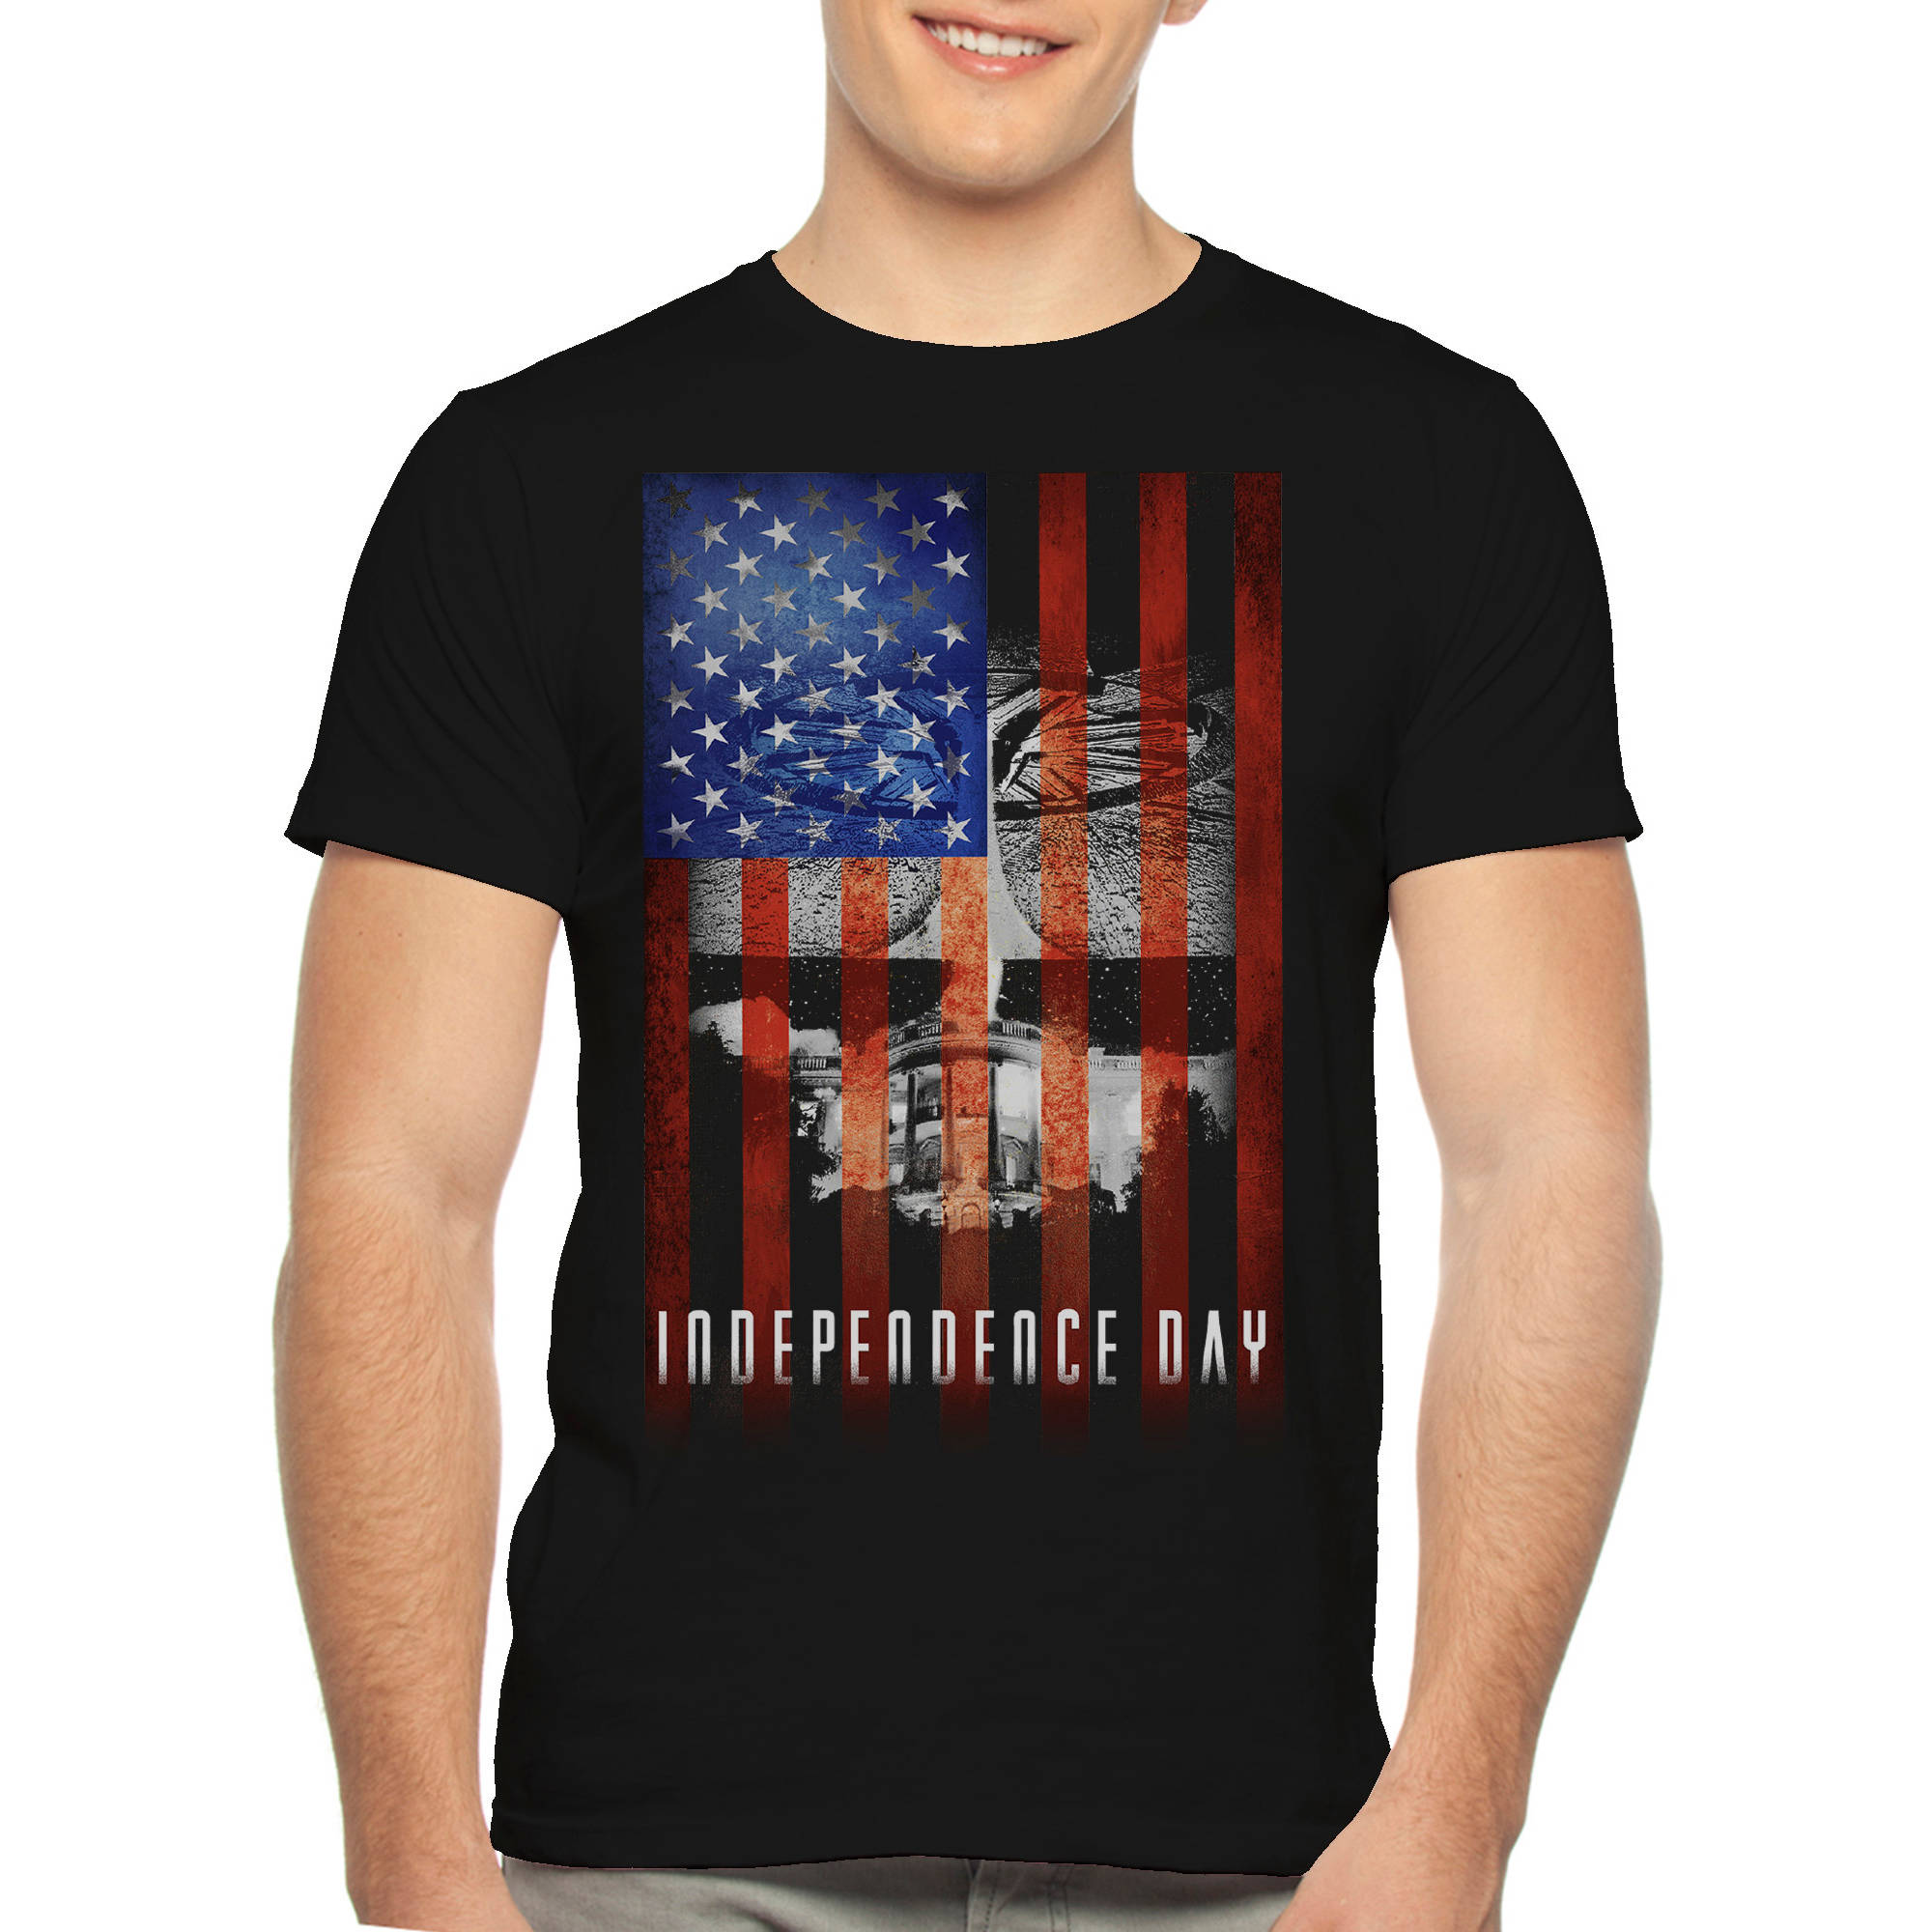 Independence Day Movie Big Men's Graphic Tee